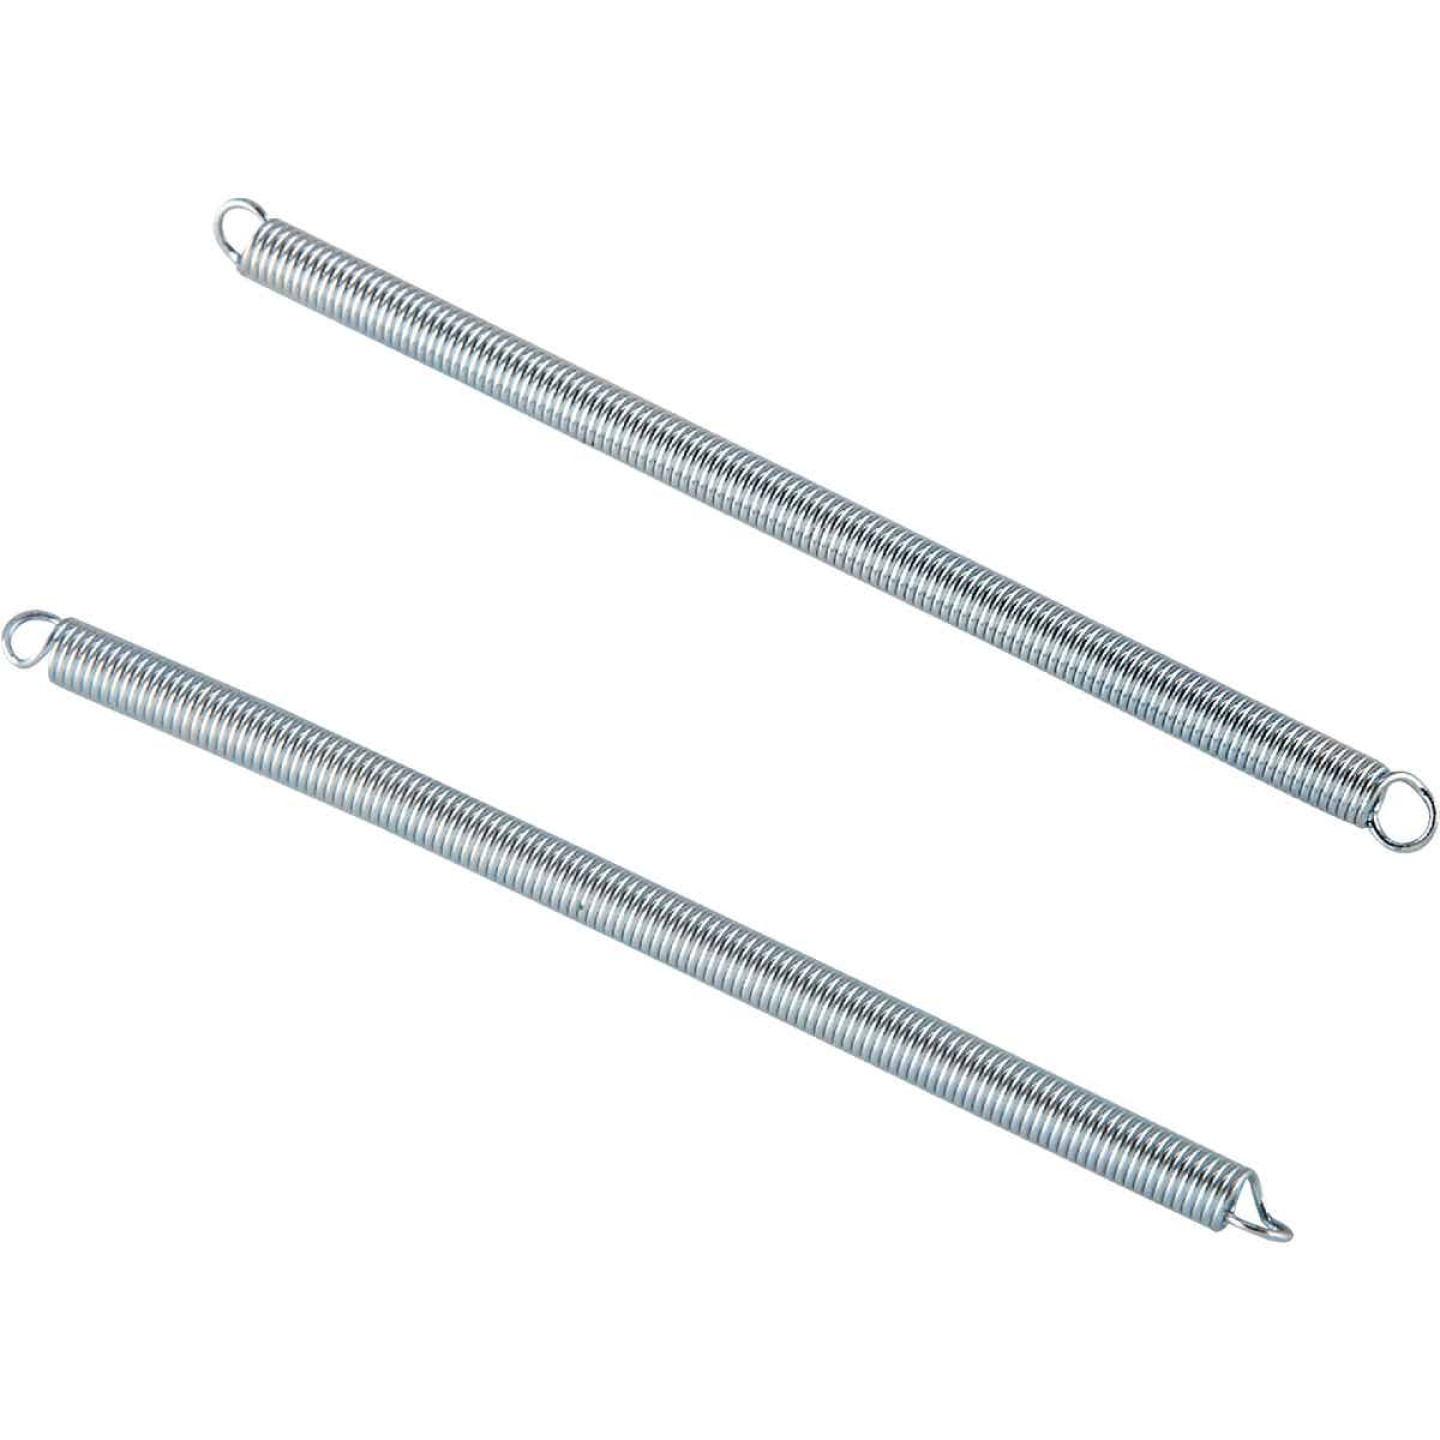 Century Spring 2-1/2 In. x 1/4 In. Extension Spring (2 Count) Image 1